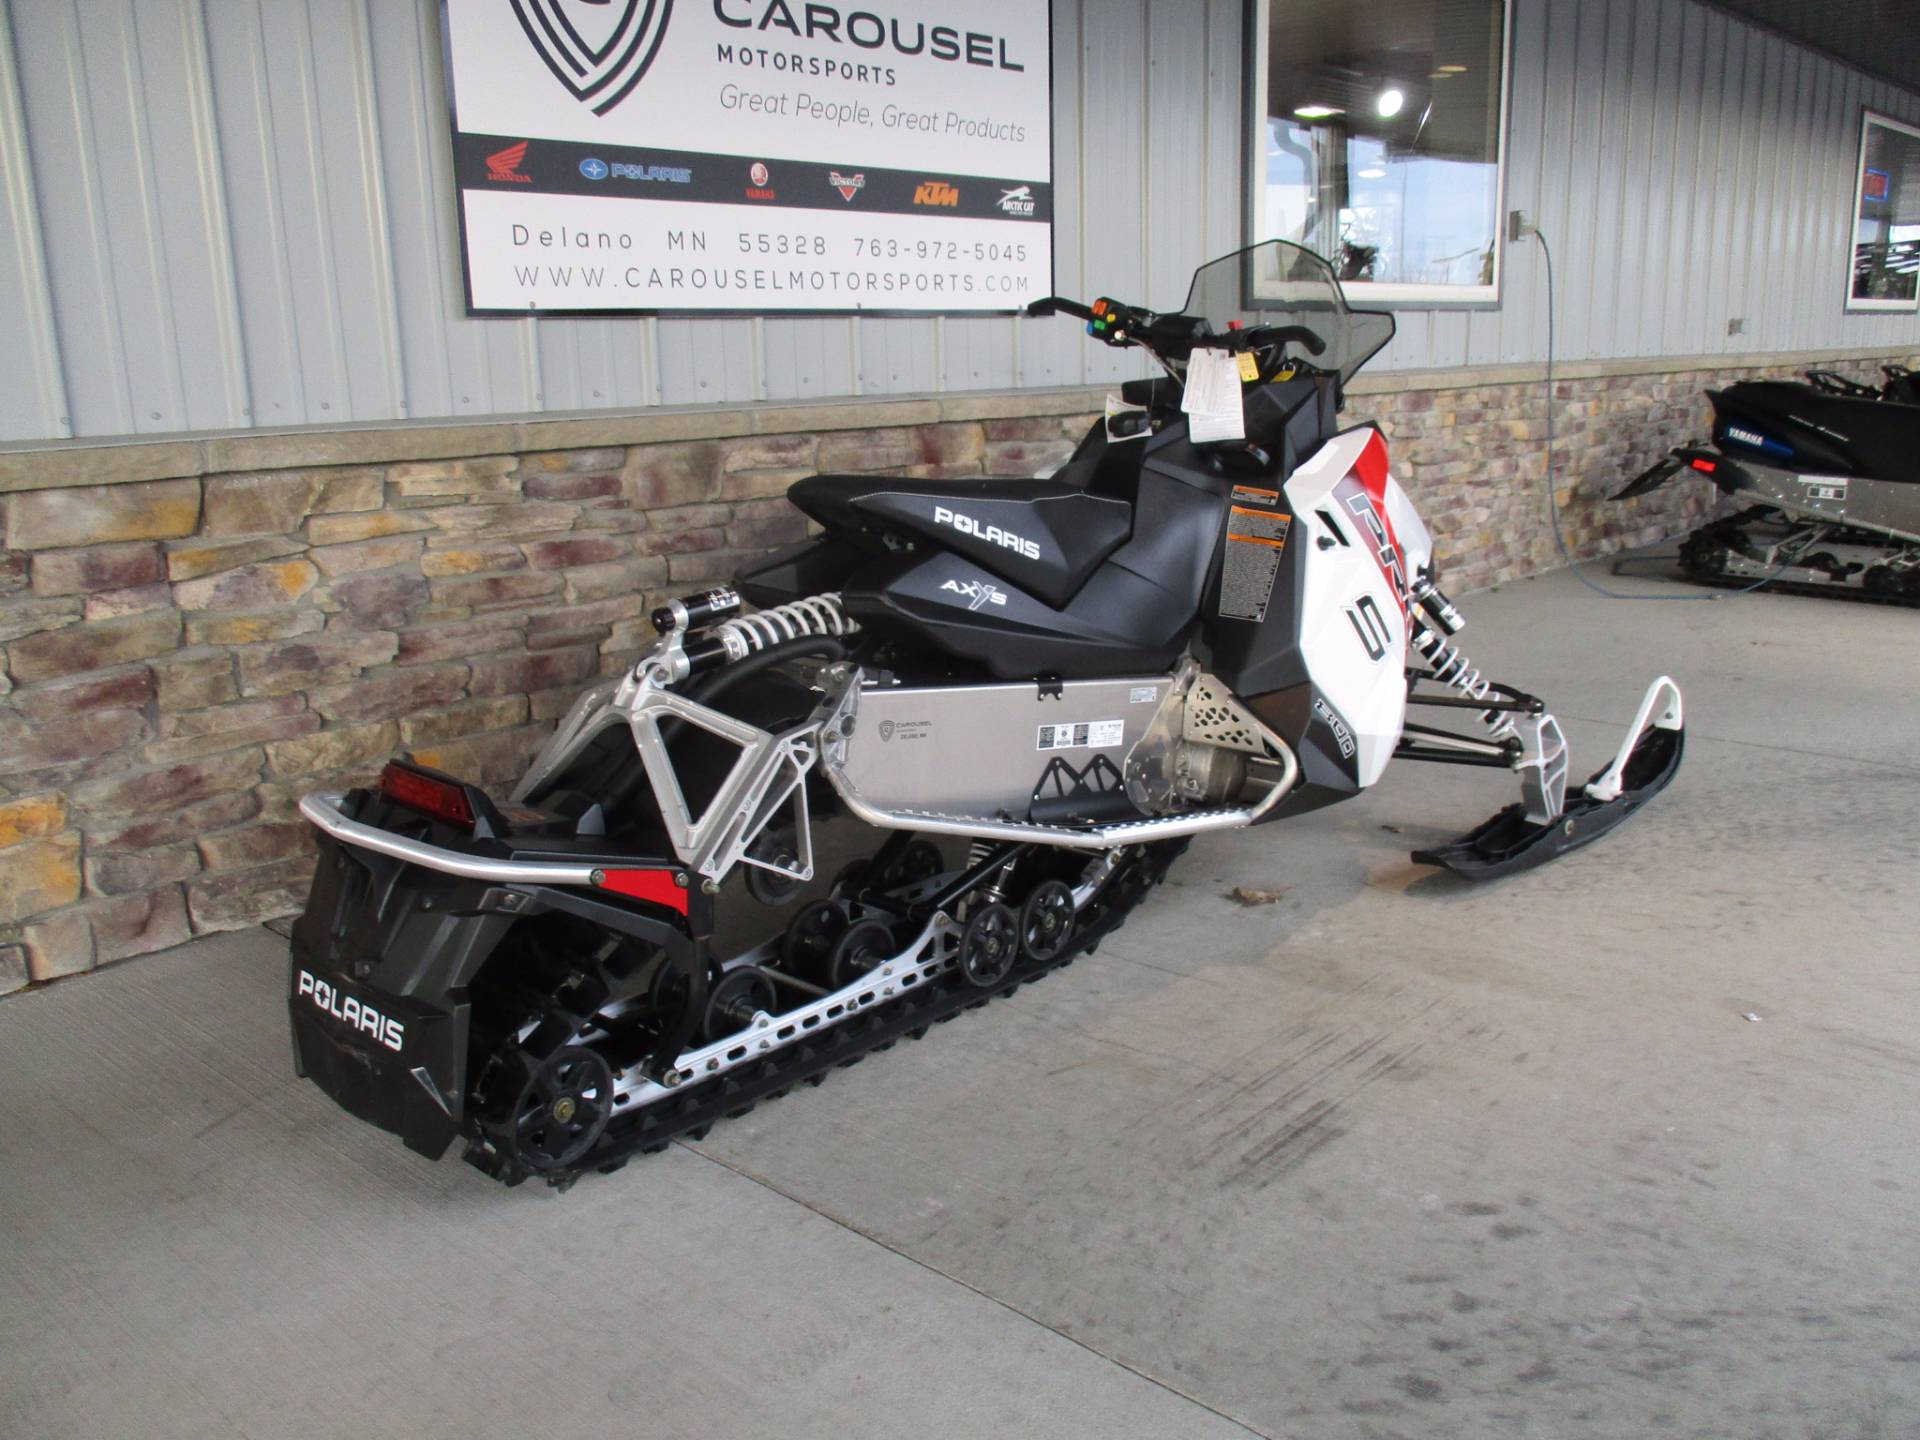 2017 Polaris 800 Switchback PRO-S in Delano, Minnesota